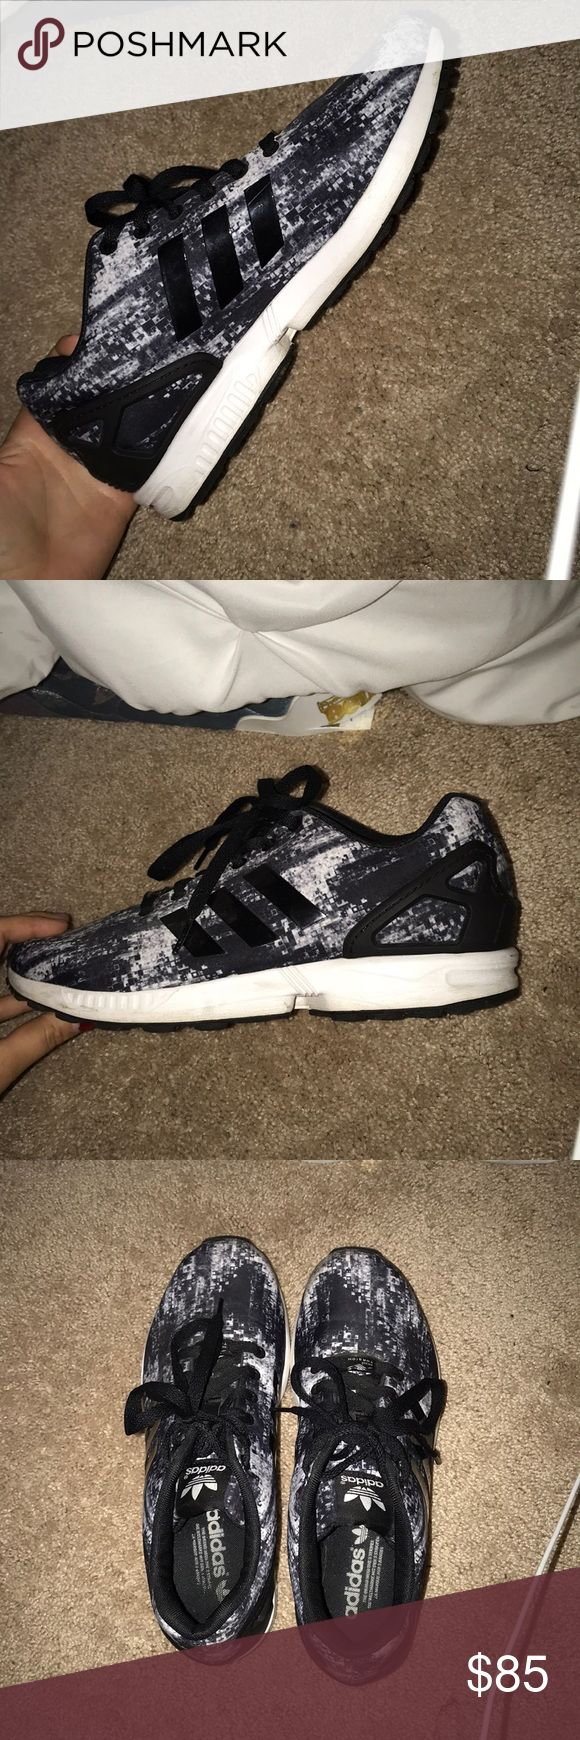 adidas tennis shoes prefect condition! worn maybe twice. perfect condition! selling bc i don't ever wear them! adidas Shoes Athletic Shoes